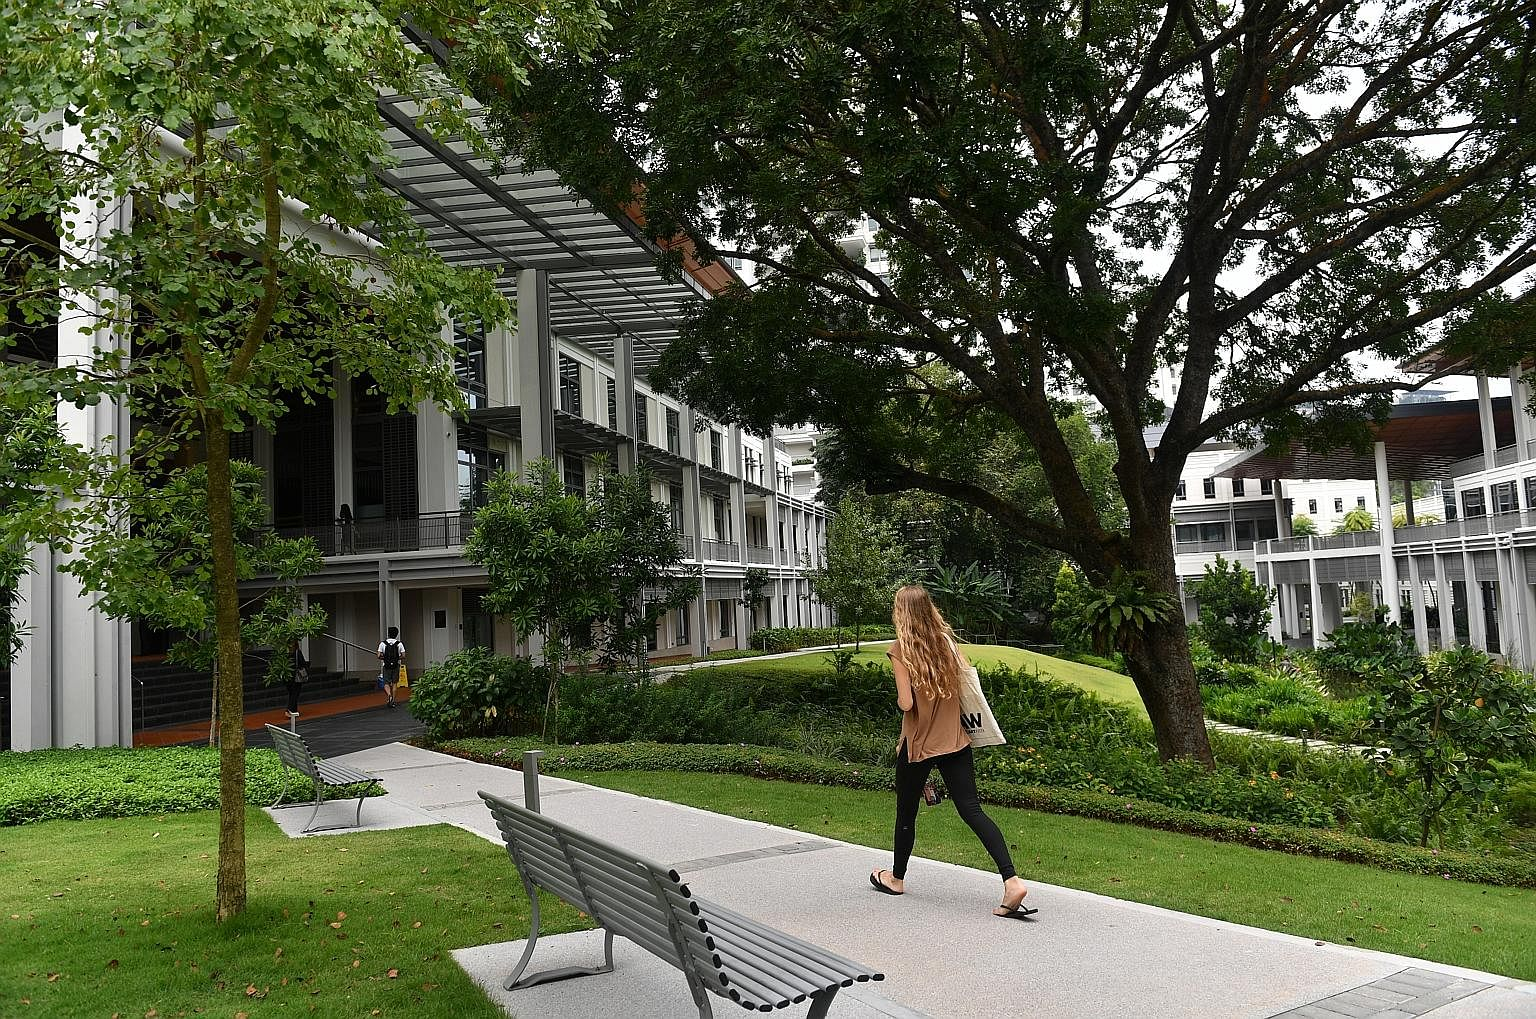 A liberal arts school like Yale-NUS College (above, in a 2017 photo) will have a place in Singapore's education landscape, says Education Minister Ong Ye Kung. But thinking critically is quite different from being unthinkingly critical, and any cours